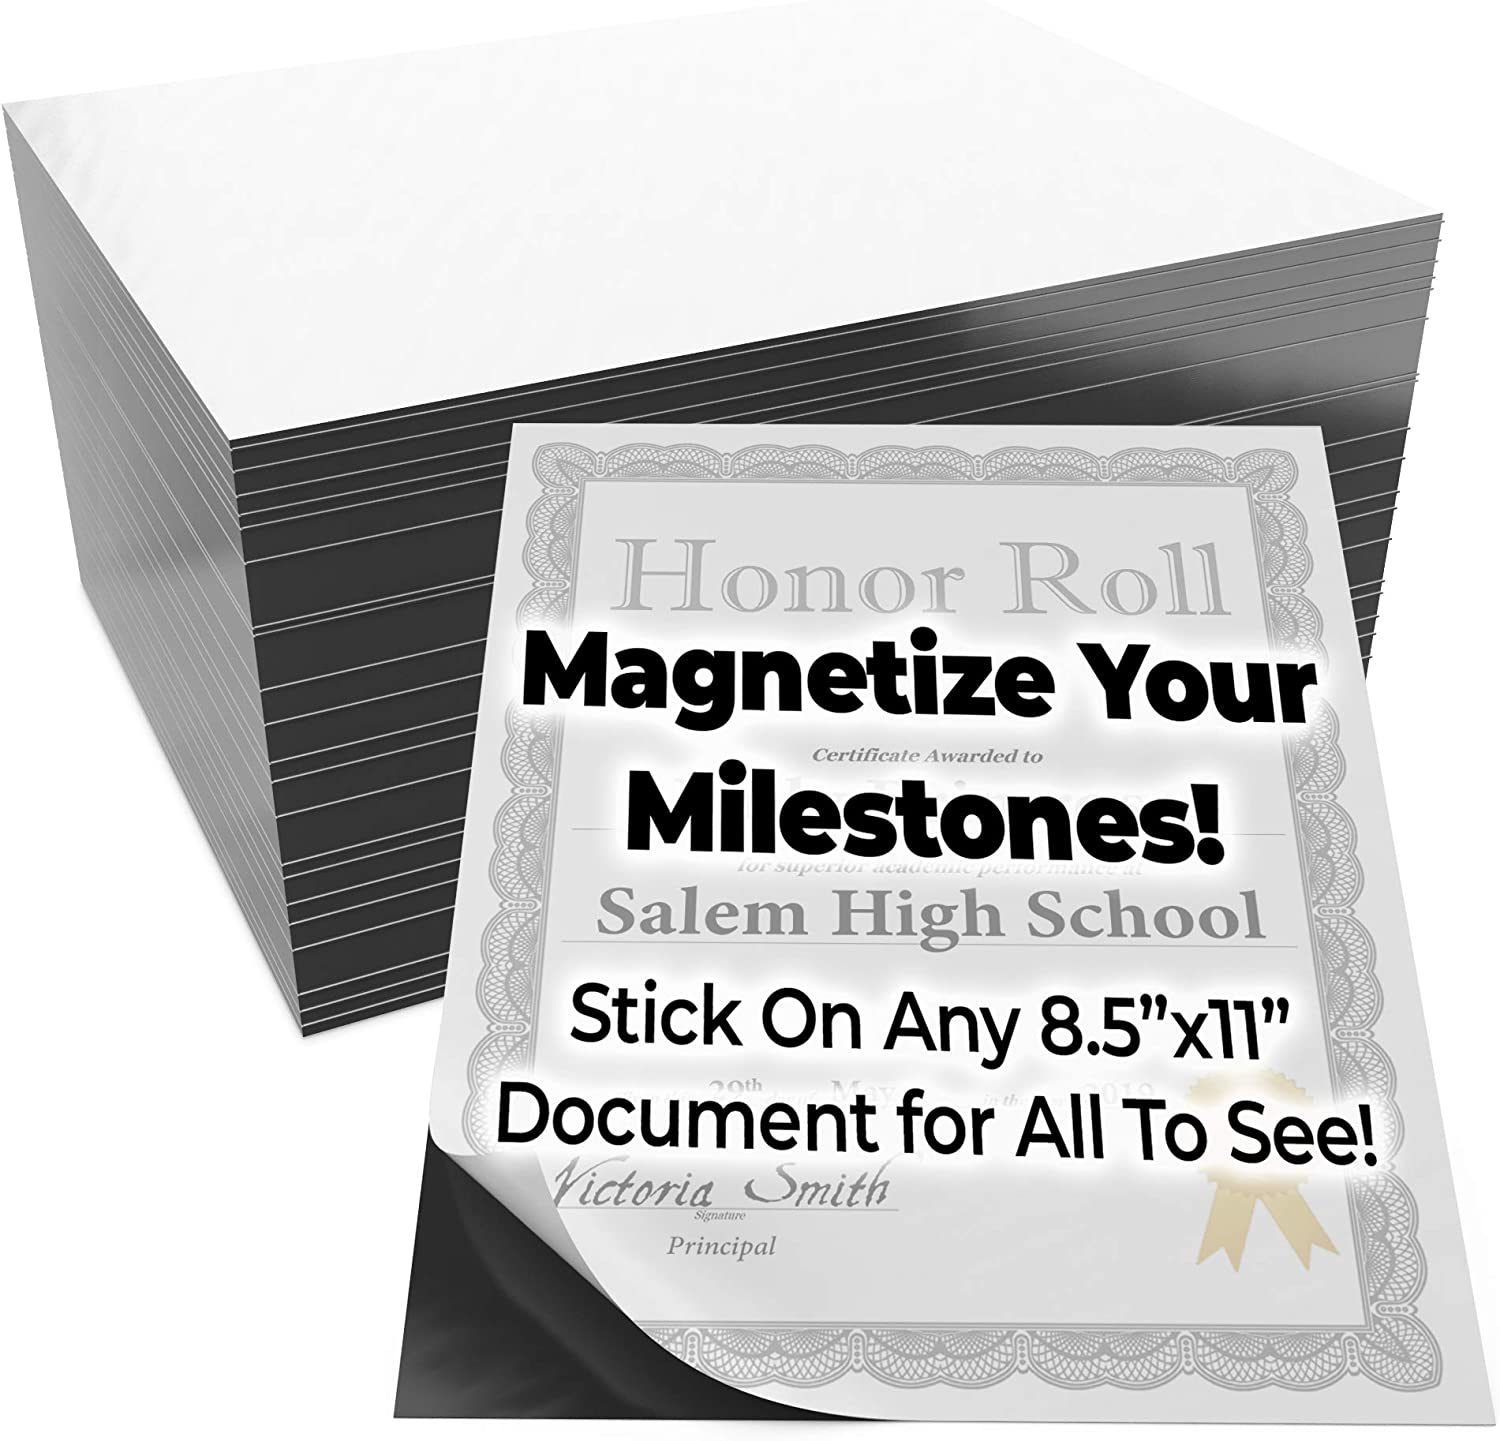 Magnetize Washington Mall Memories Miami Mall with 8.5x11in Adhesive 250pk. P Photo Magnets